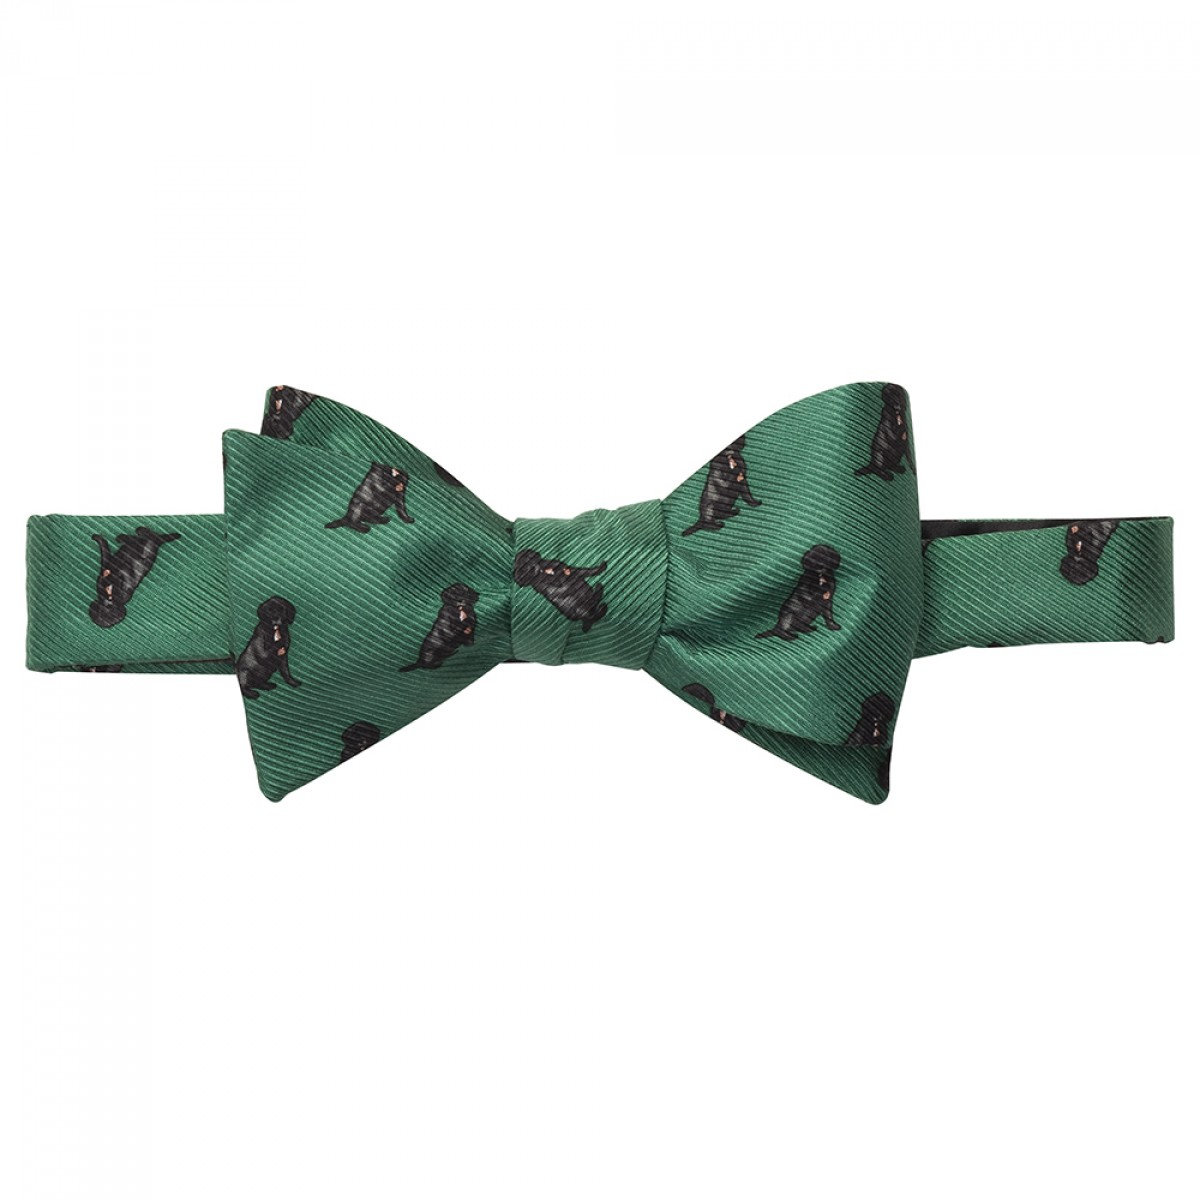 WM. Lamb & Son - Booze Hound Bow - Green